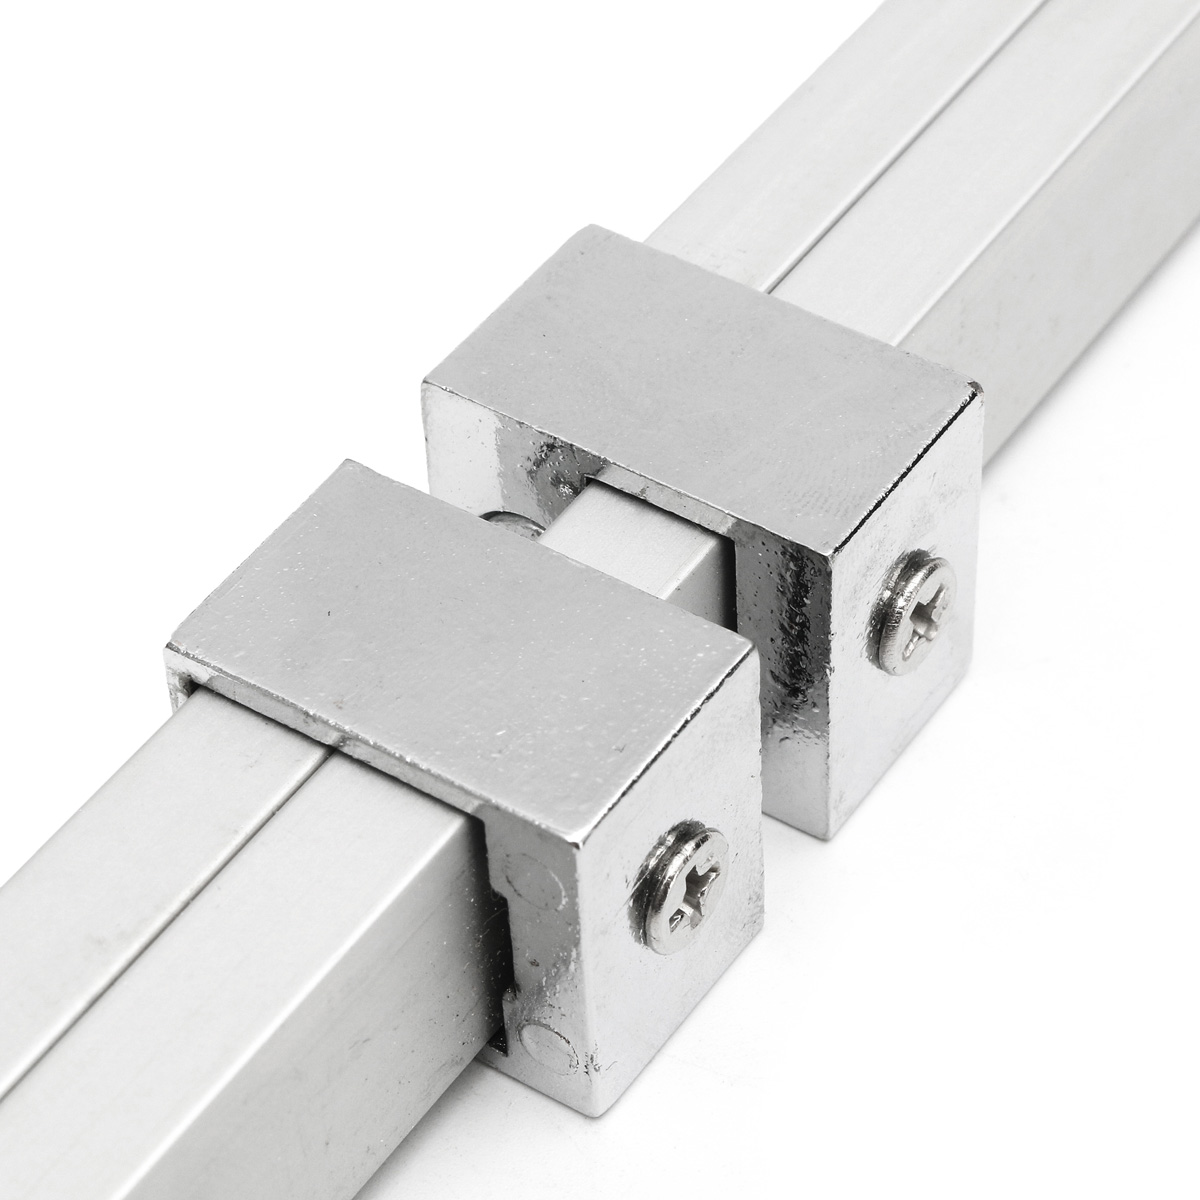 Arm Mechanism Hinges Vertical Swing Lift Up Stay Pneumatic for Cabinet Door